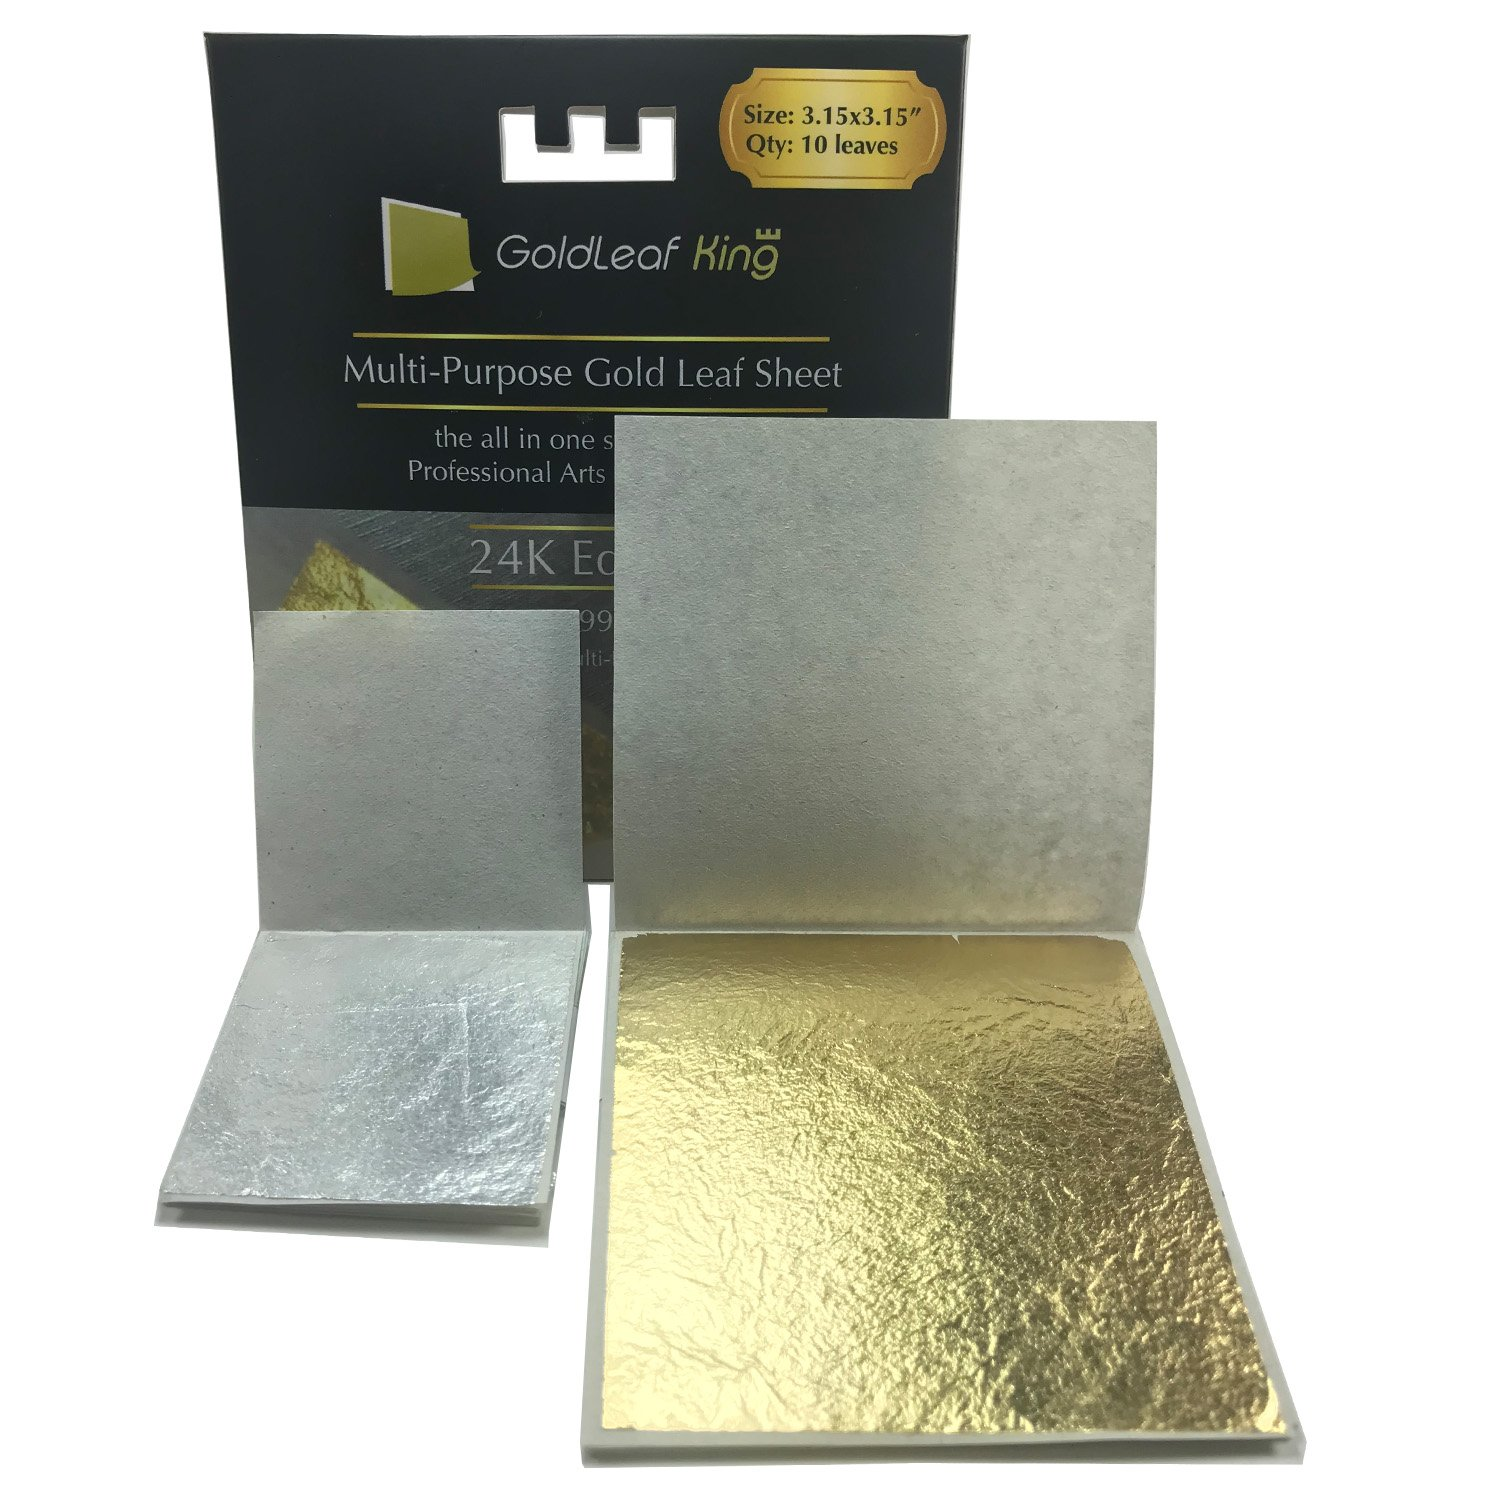 Goldleafking Large 10 x 24K Edible Gold Leaf Sheets 3.15 x 3.15 inches for Cooking, Cake & Chocolate, Arts, Food Decoration, Golden Chicken, Gilding, Multi-Purpose + Free Silver Leaf x 10